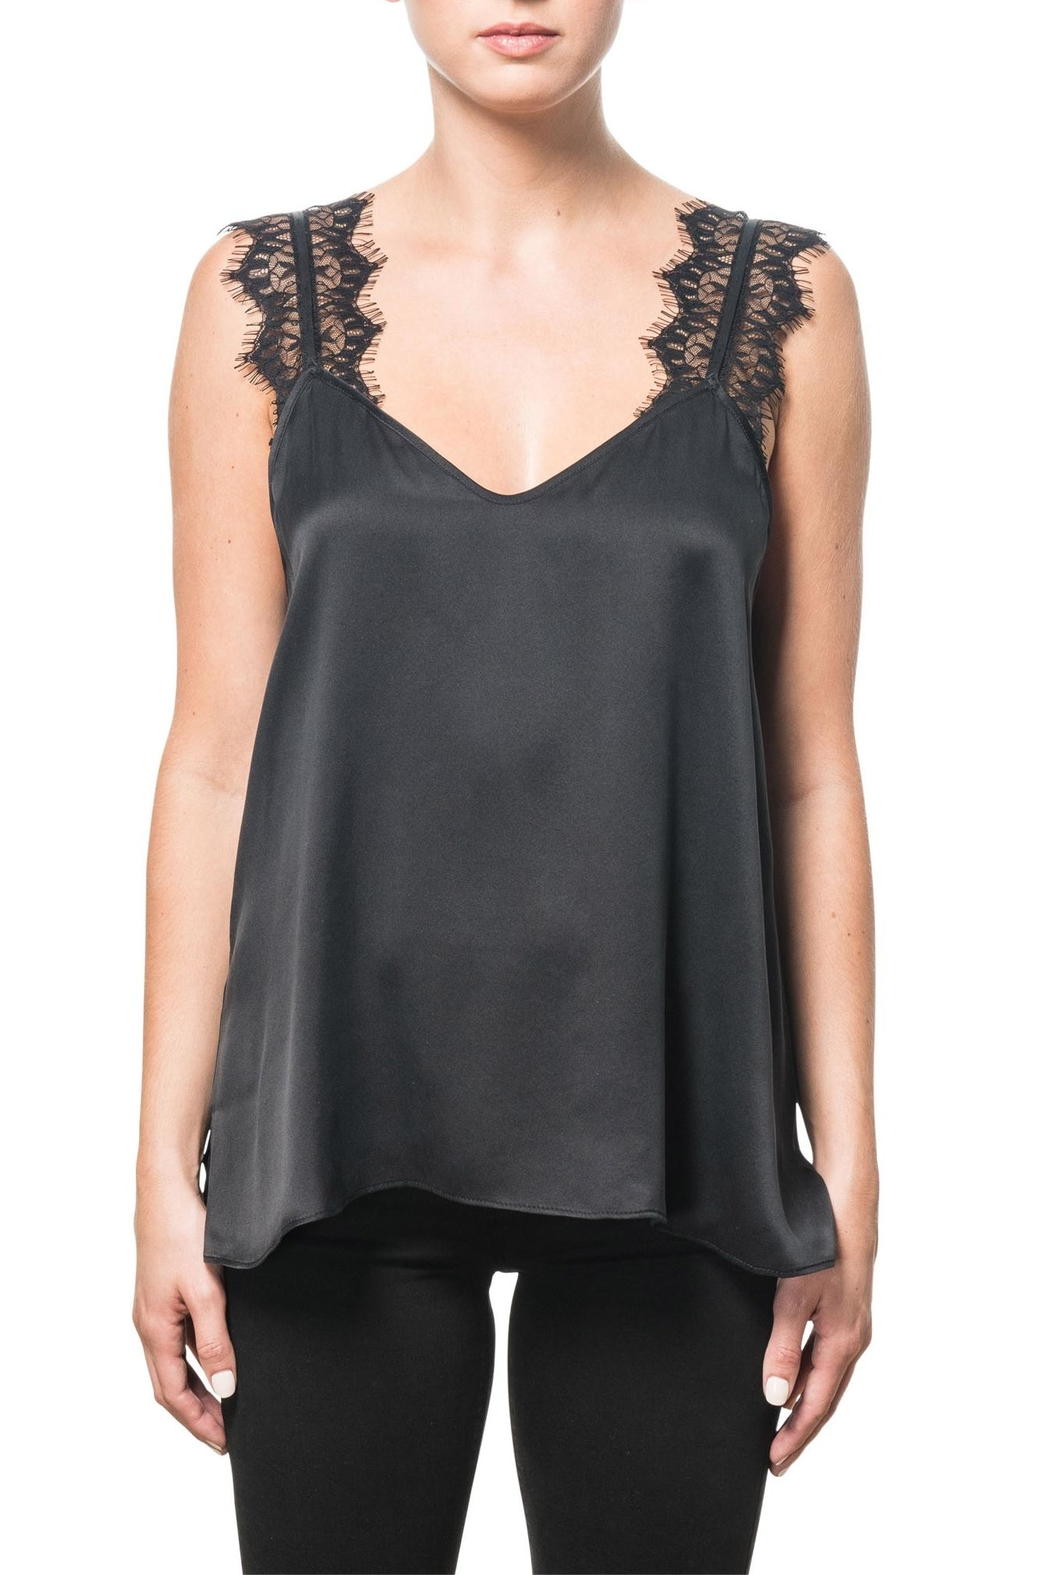 Cami NYC Charmeuse Lace Camisole - Front Cropped Image